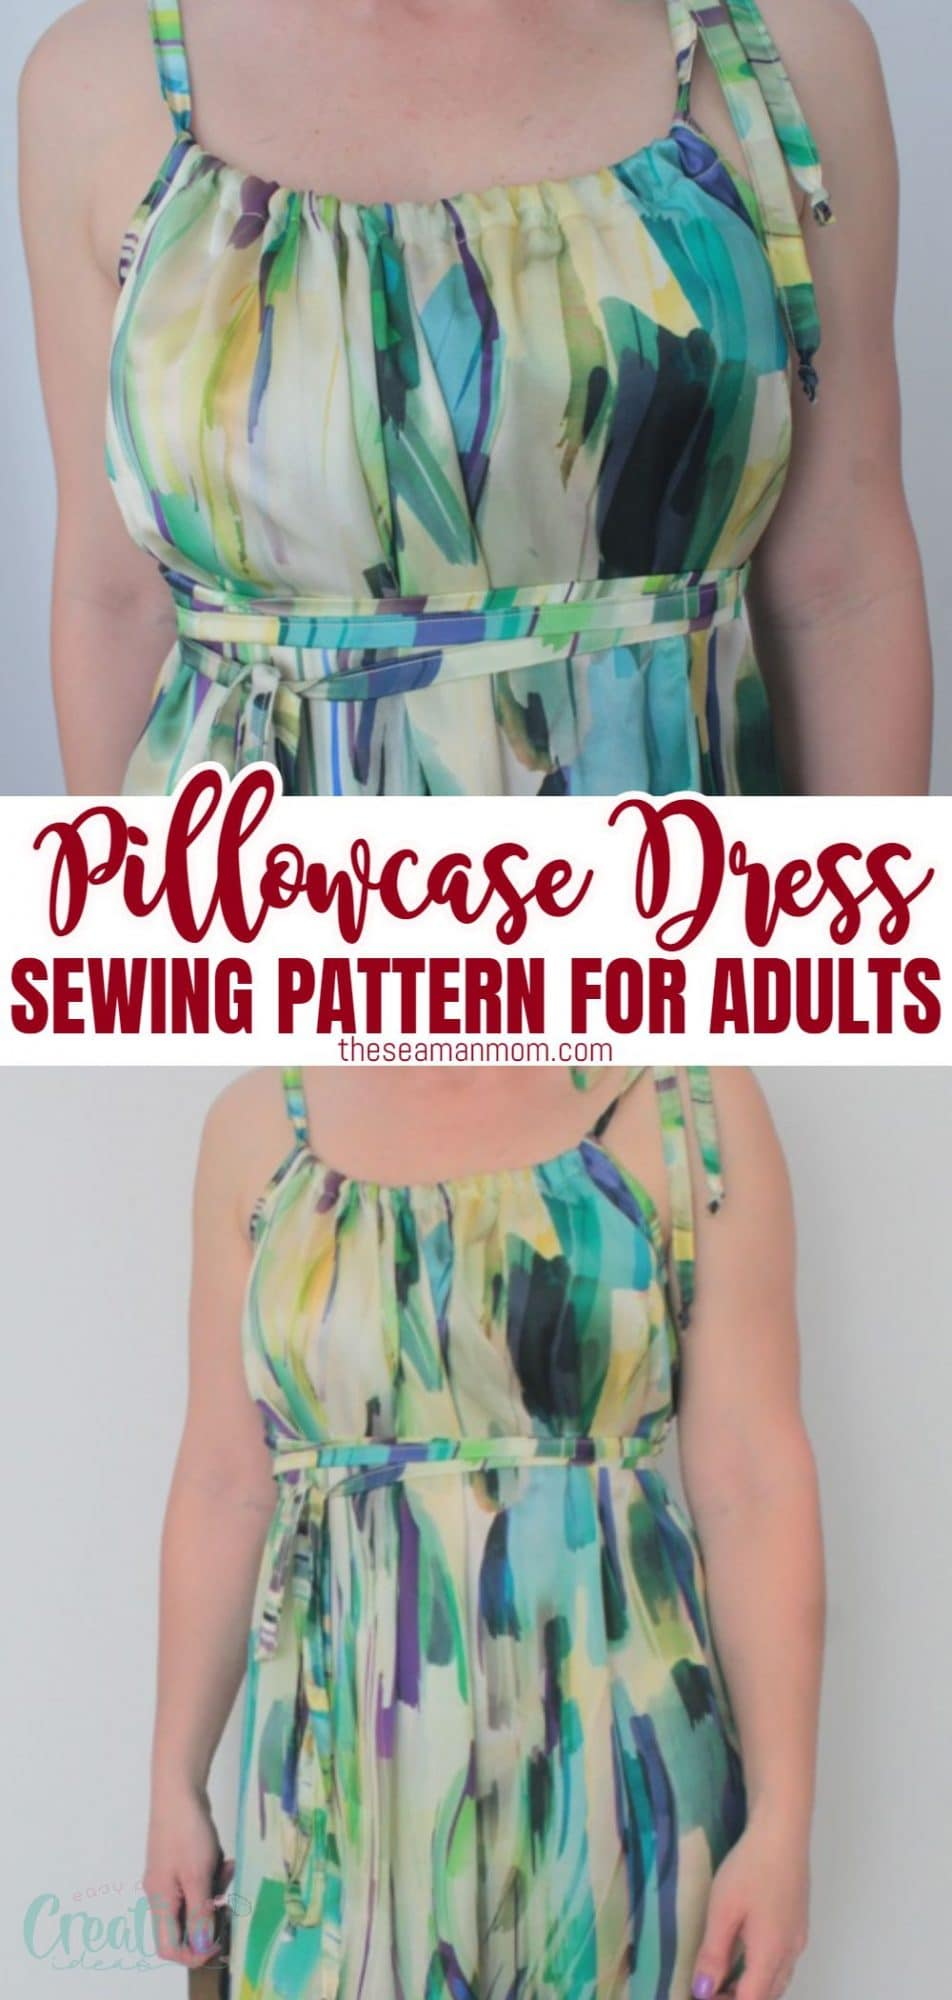 Image of a pillowcase dress for adults